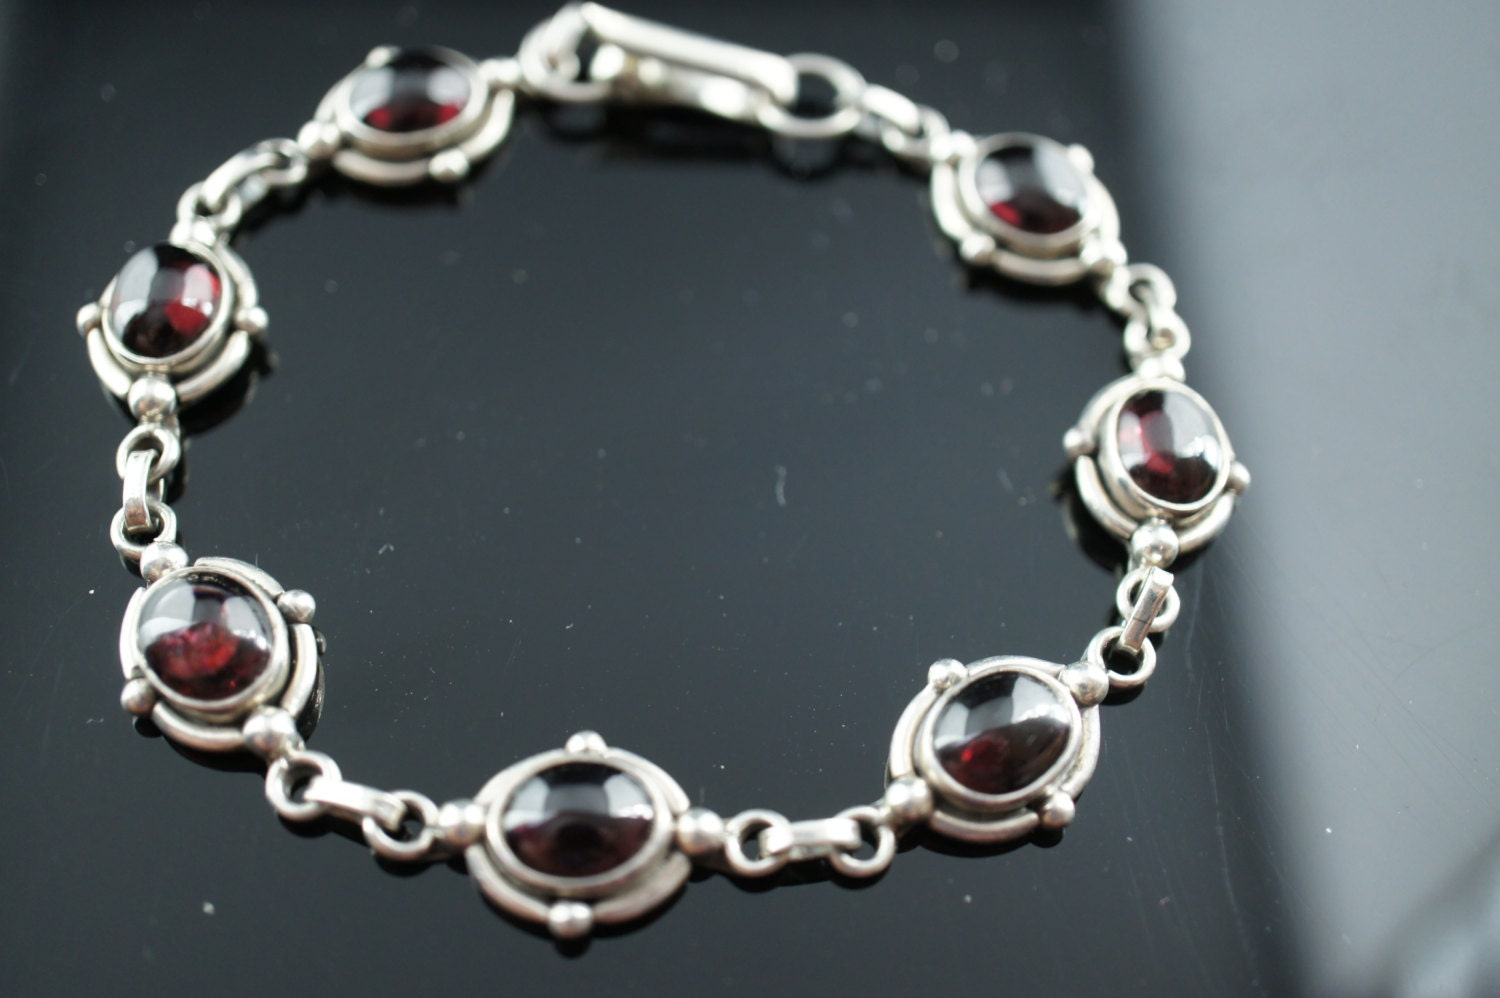 Vintage Art Deco bracelet Sterling Silver 925 red dark purple links oval chain d031